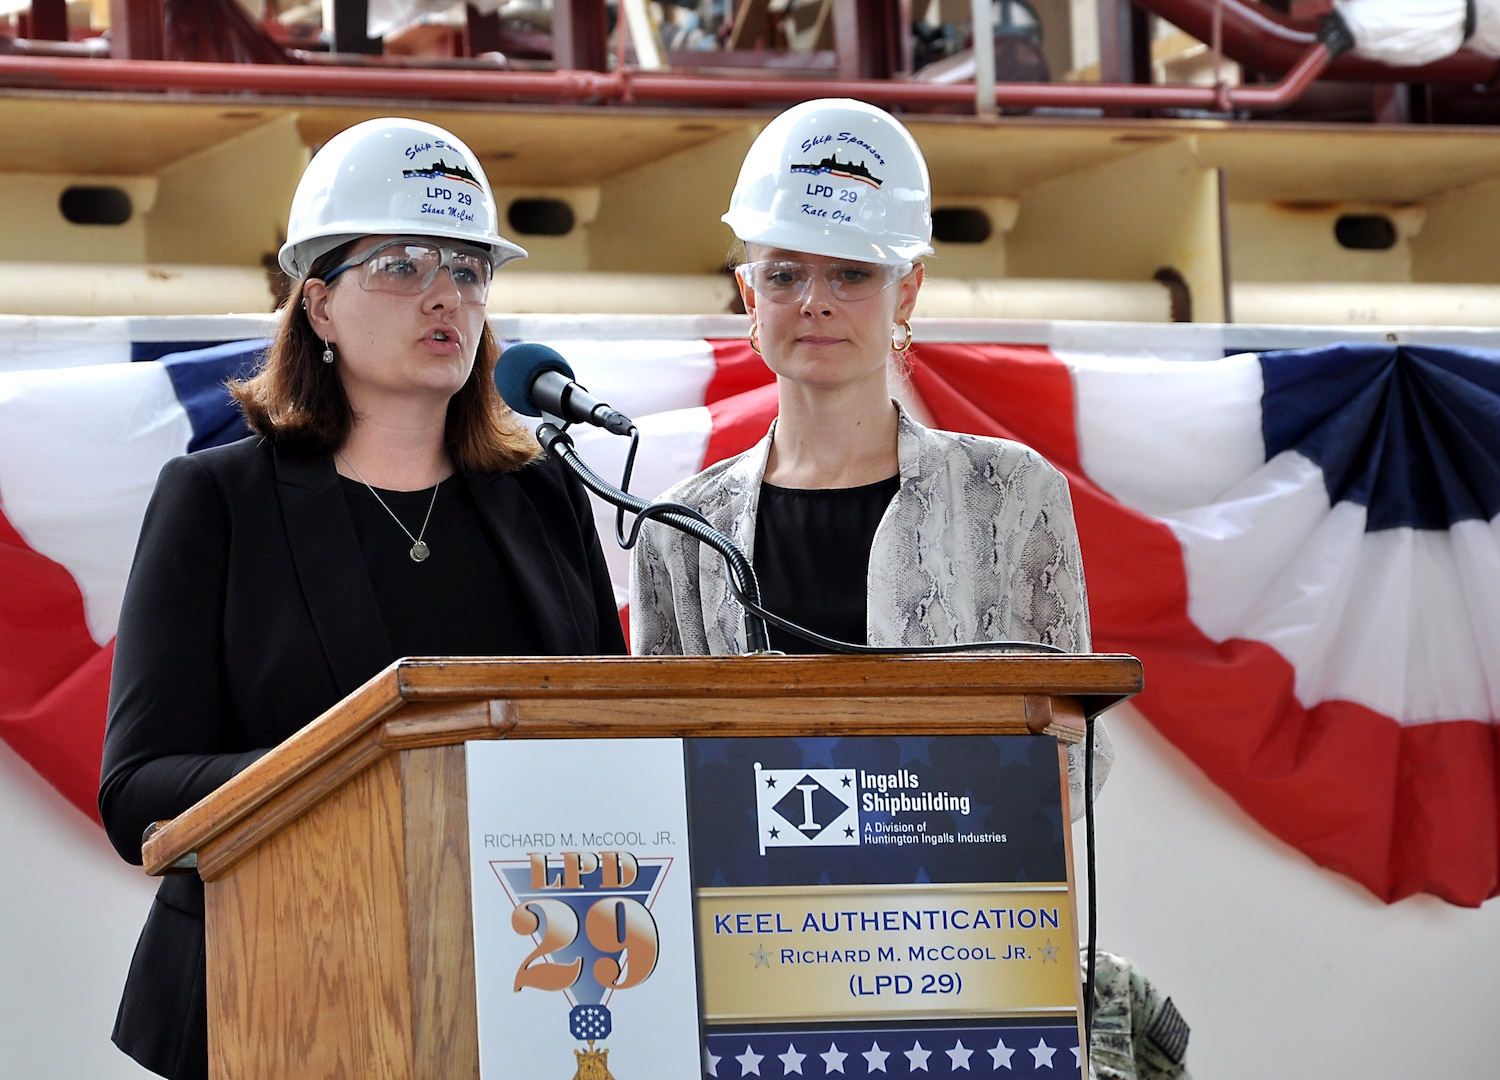 Shana McCool (left) and Kate Oja, ship sponsors of the future USS Richard M. McCool Jr. (LPD 29), speak about their grandfather during the keel authentication ceremony for the ship at Huntington Ingalls Industries Pascagoula shipyard April 12.